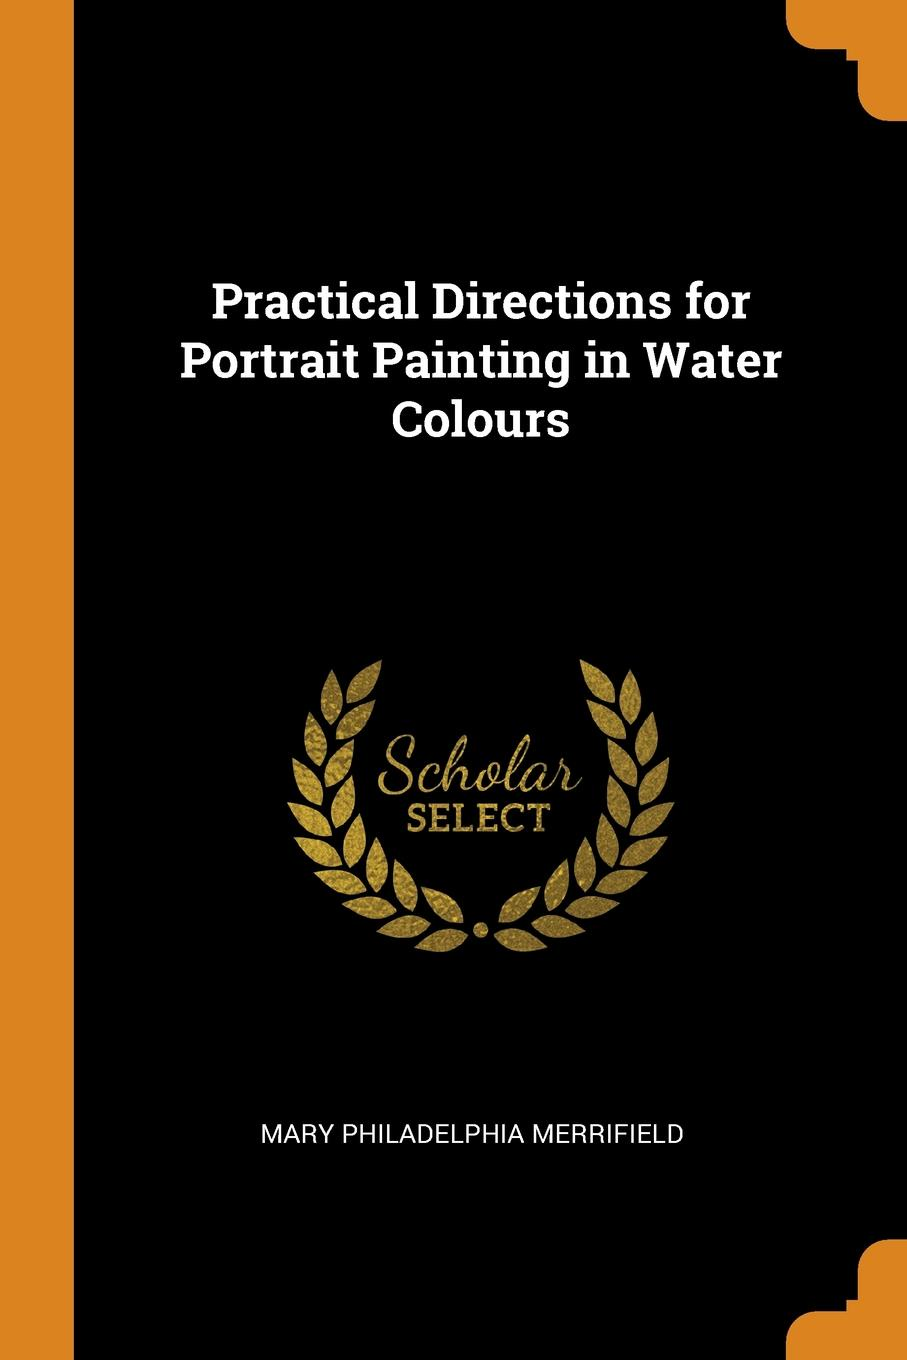 Practical Directions for Portrait Painting in Water Colours